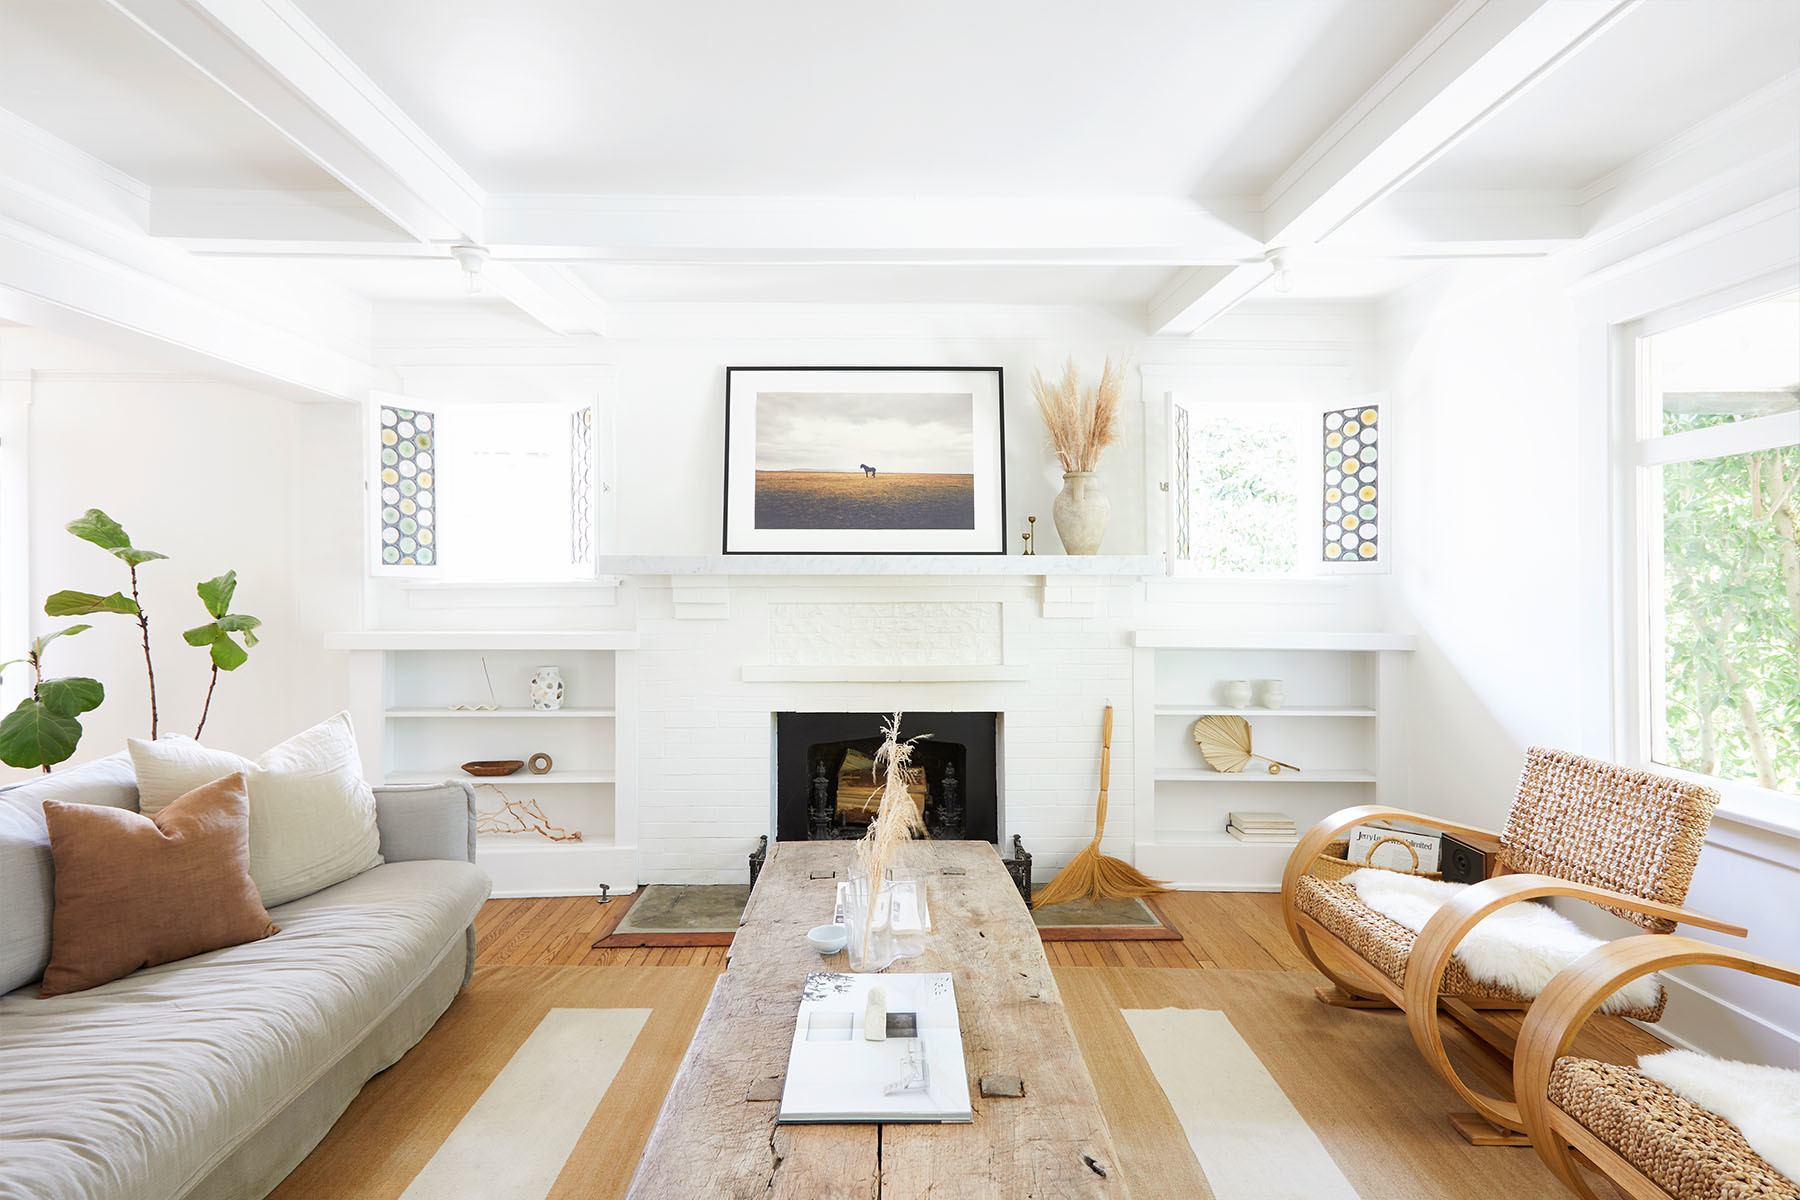 A warm-yet-minimal bungalow in Venice Beach gets an earthy edit. Dunn Edwards Paint | Sixpenny Sofa | Vintage Rug | Vintage Custom Coffee Table | Vintage Artwork | Hawkins New York Sheepskins | Alvar Aalto Assorted Glass Vases | Rachel Saunders Ceramics | Vintage Candlesticks | General Store Basket.